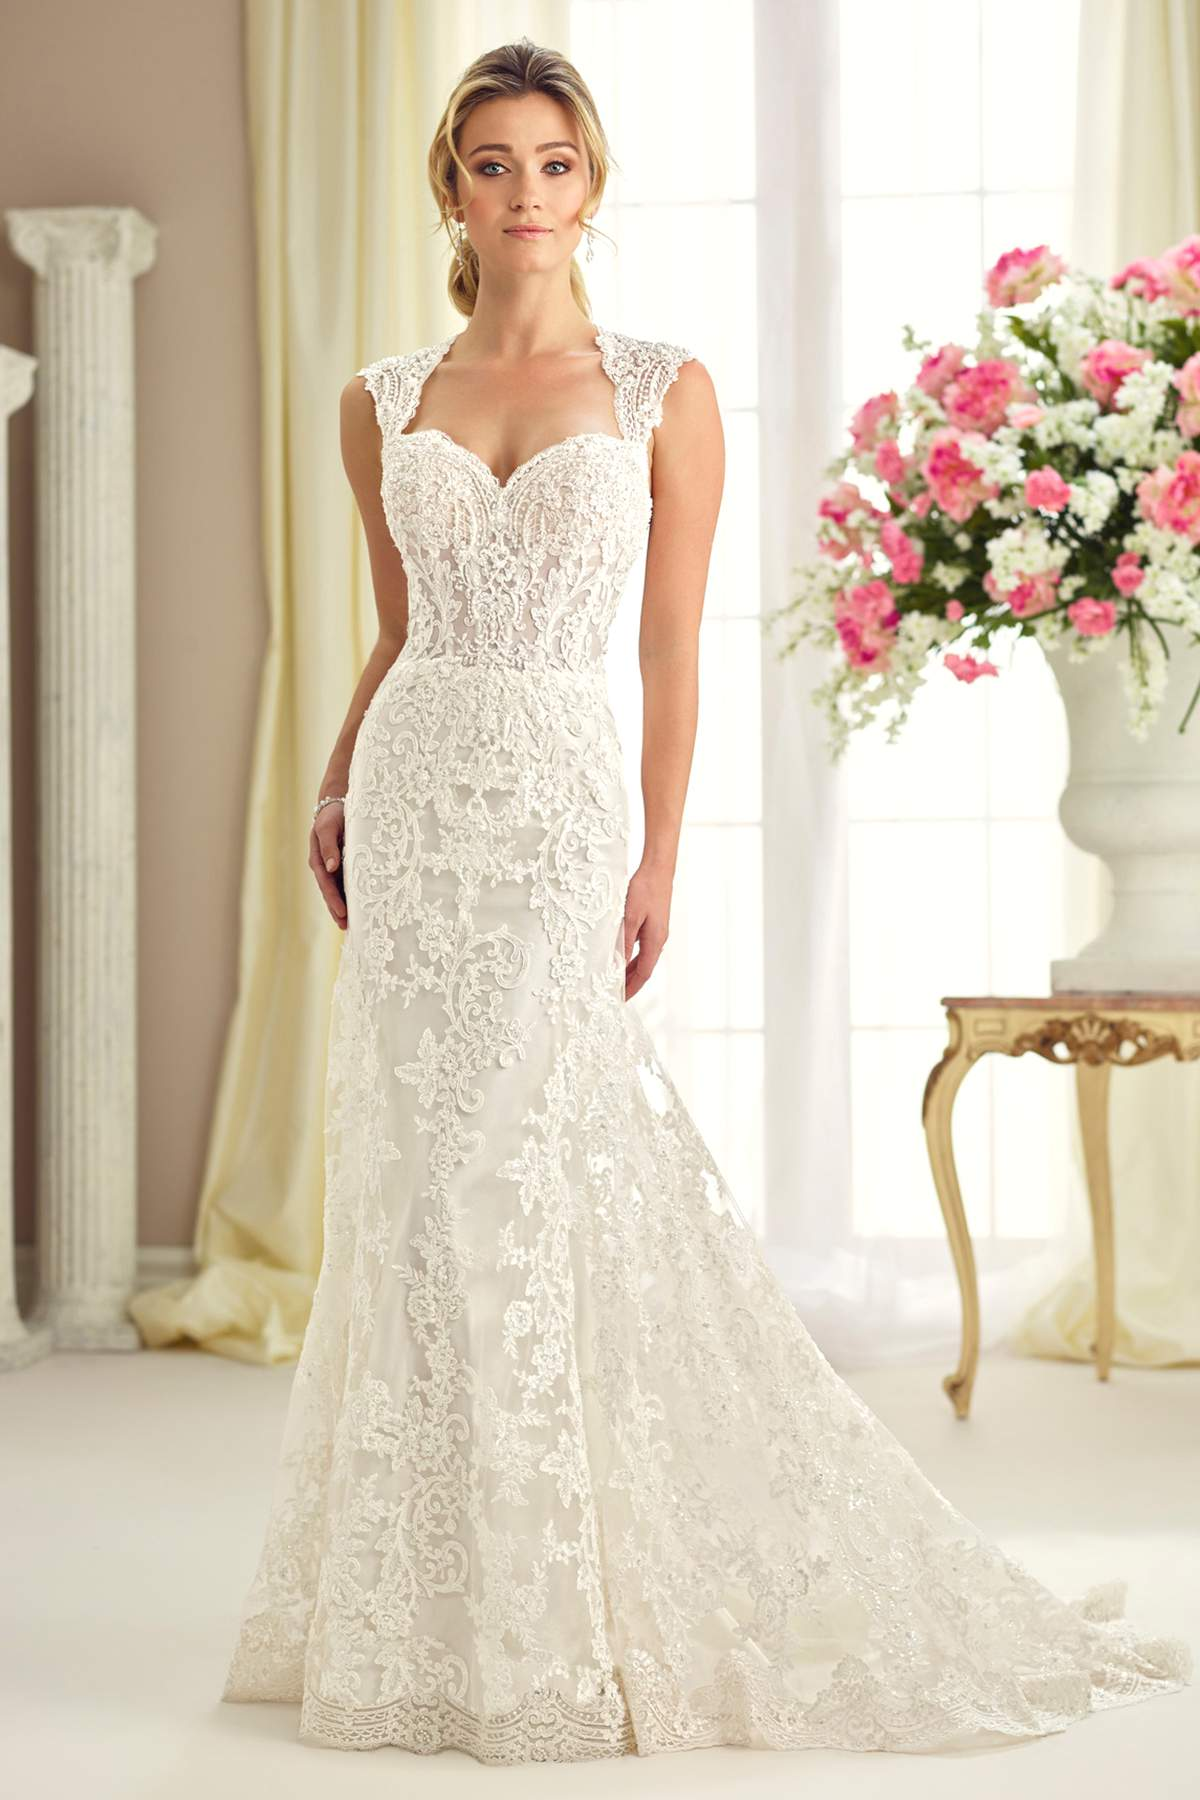 908cf28880f Style 217116 by Enchanting by Mon Cheri - Find Your Dream Dress